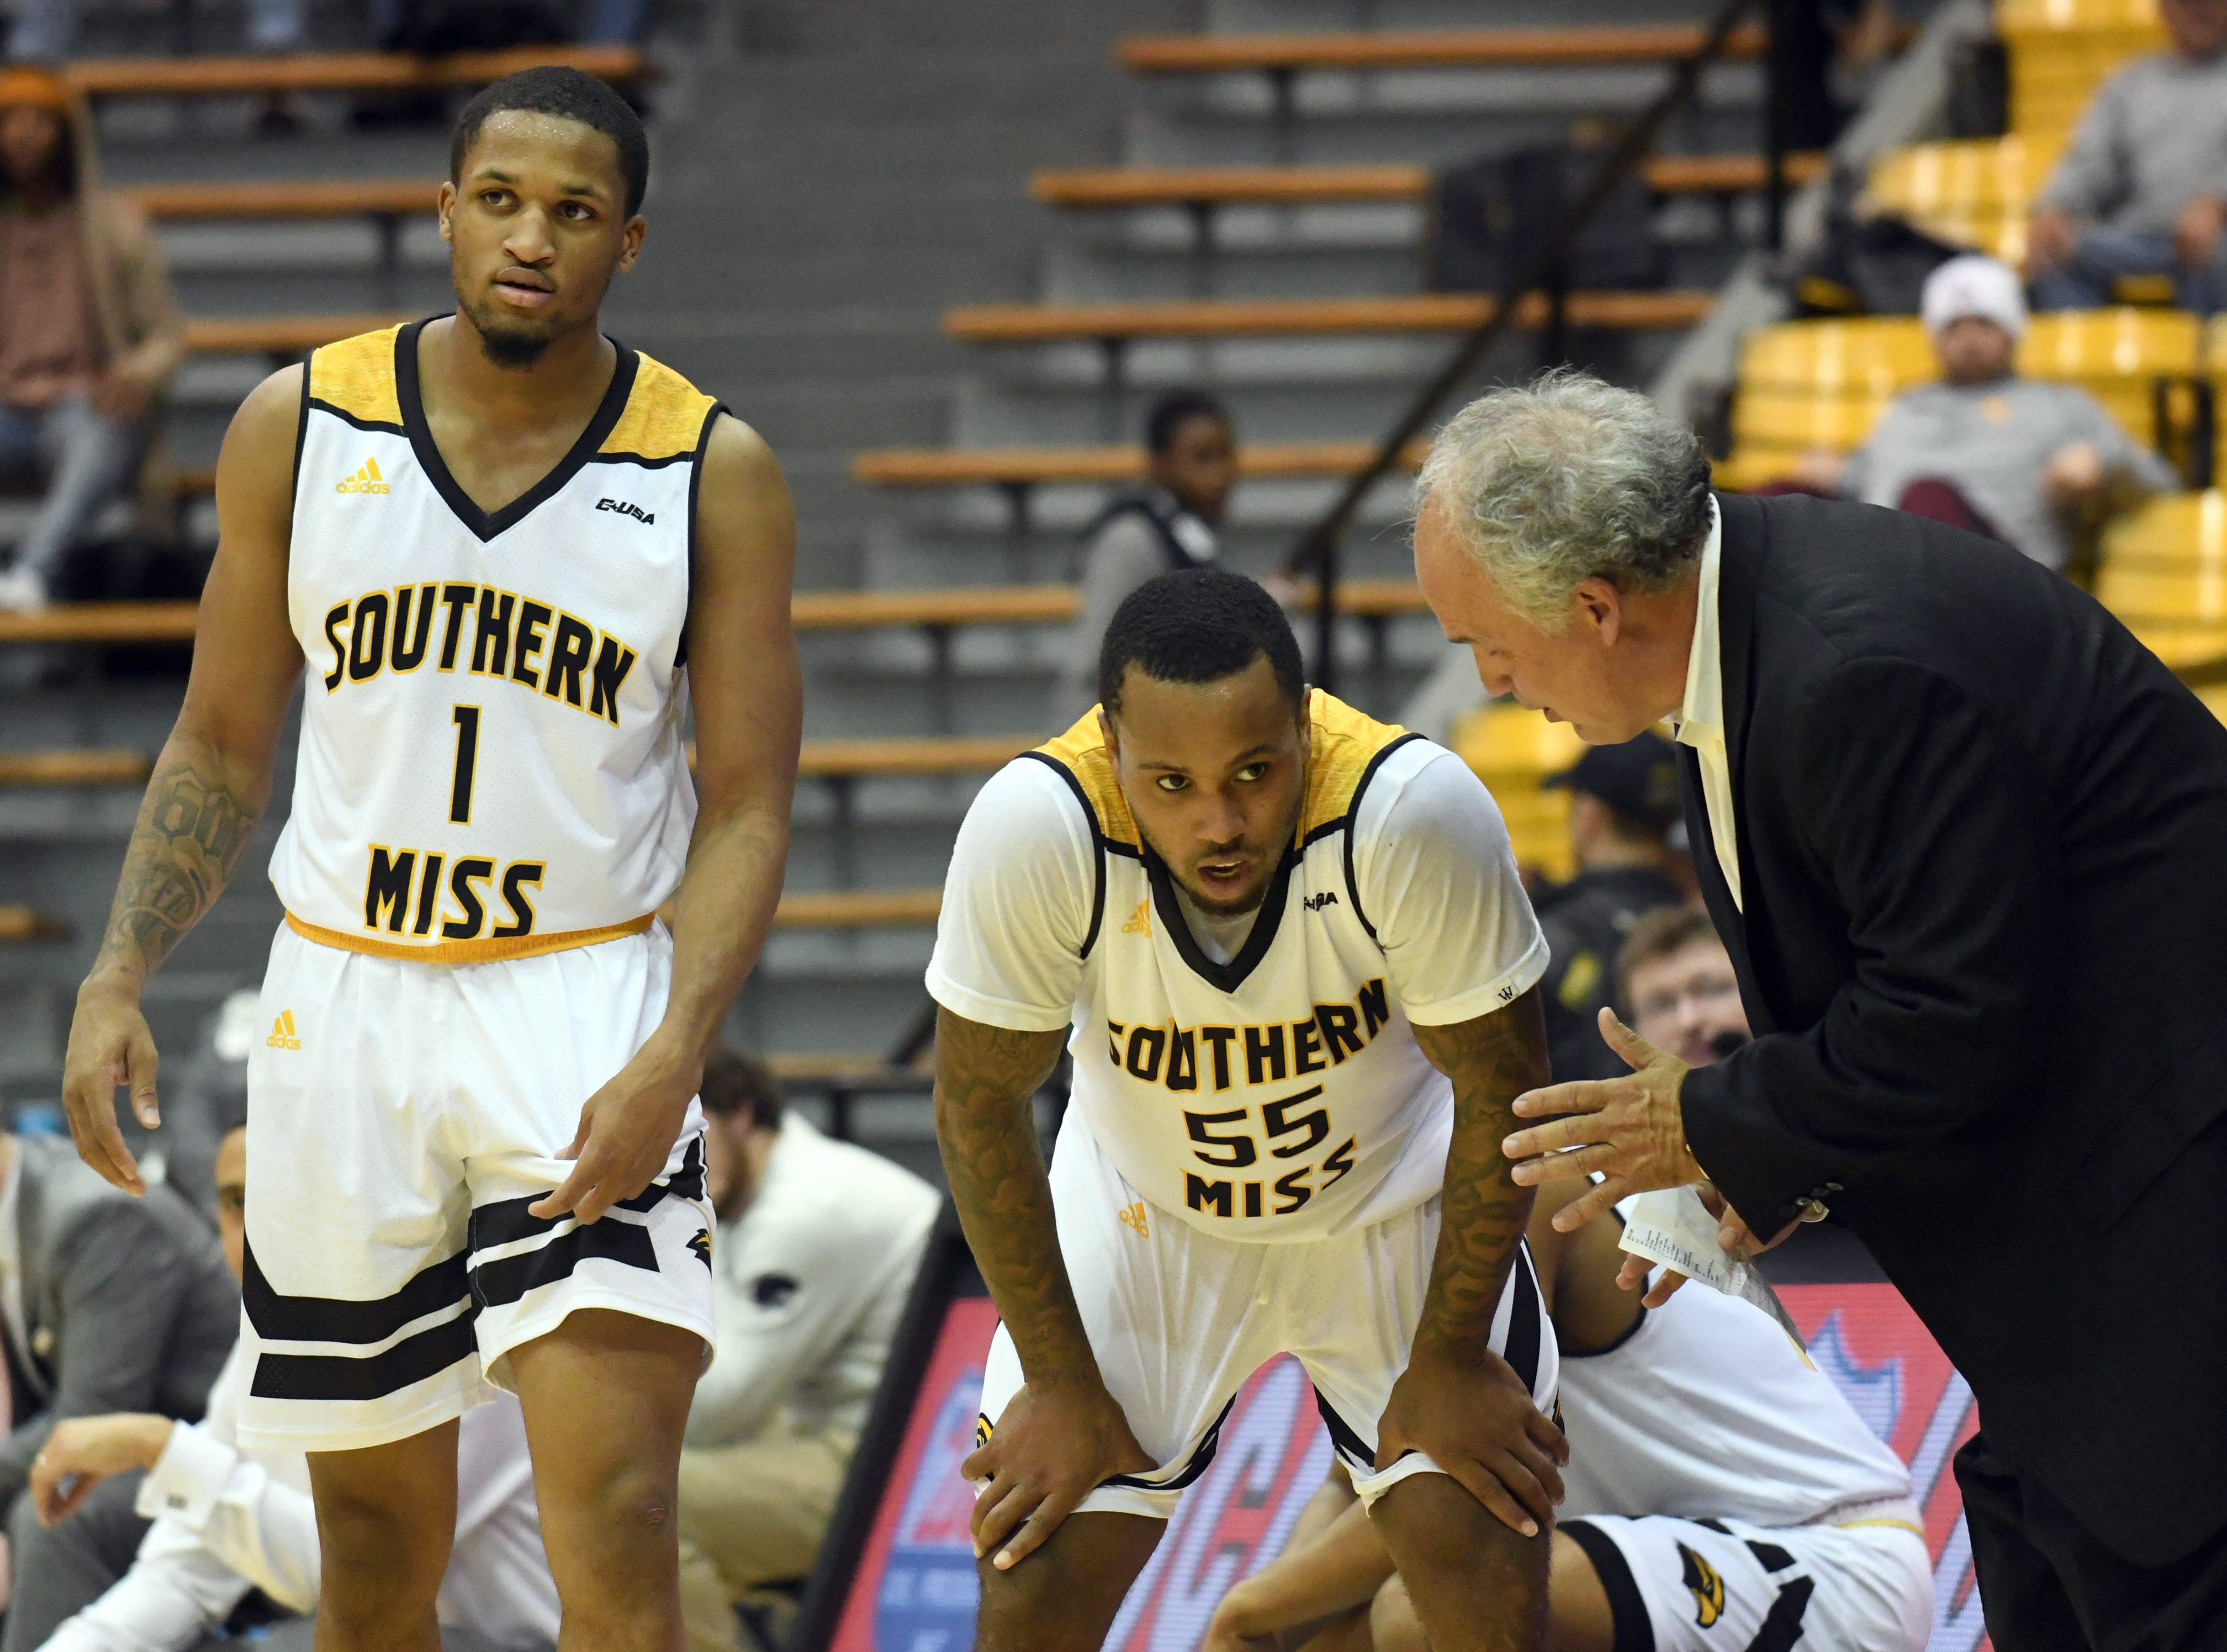 Southern Miss head coach Doc Sadler speaks with guard Tyree Griffins in a game against South Alabama in Reed Green Coliseum on Wednesday, November 28, 2018.